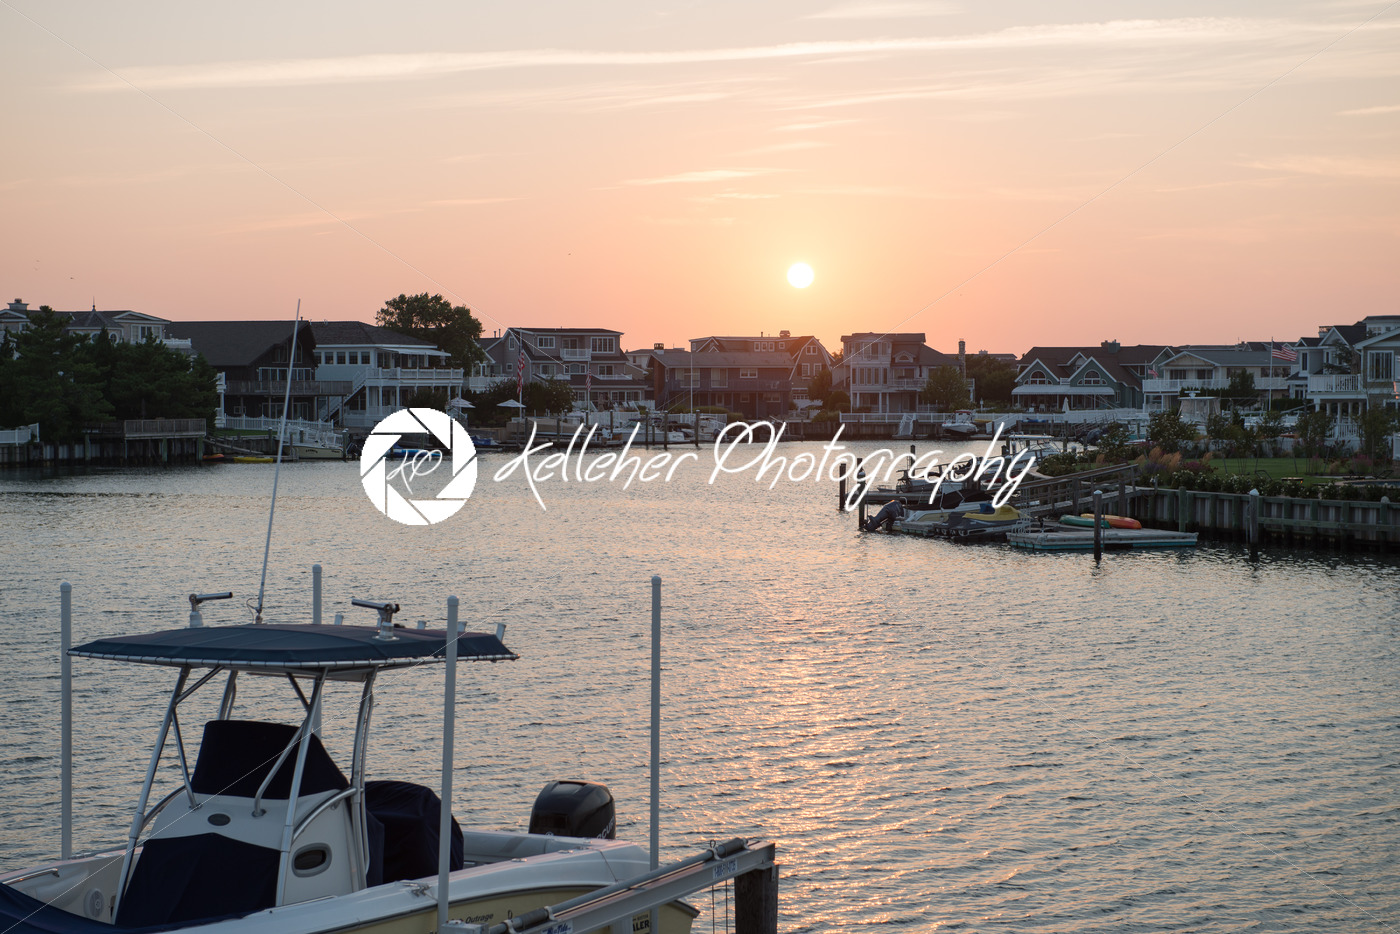 AVALON, NJ – AUGUST 30: Avalon Bay, beautiful bay with view of mansions and yachts at sunset on August 30, 2013 - Kelleher Photography Store